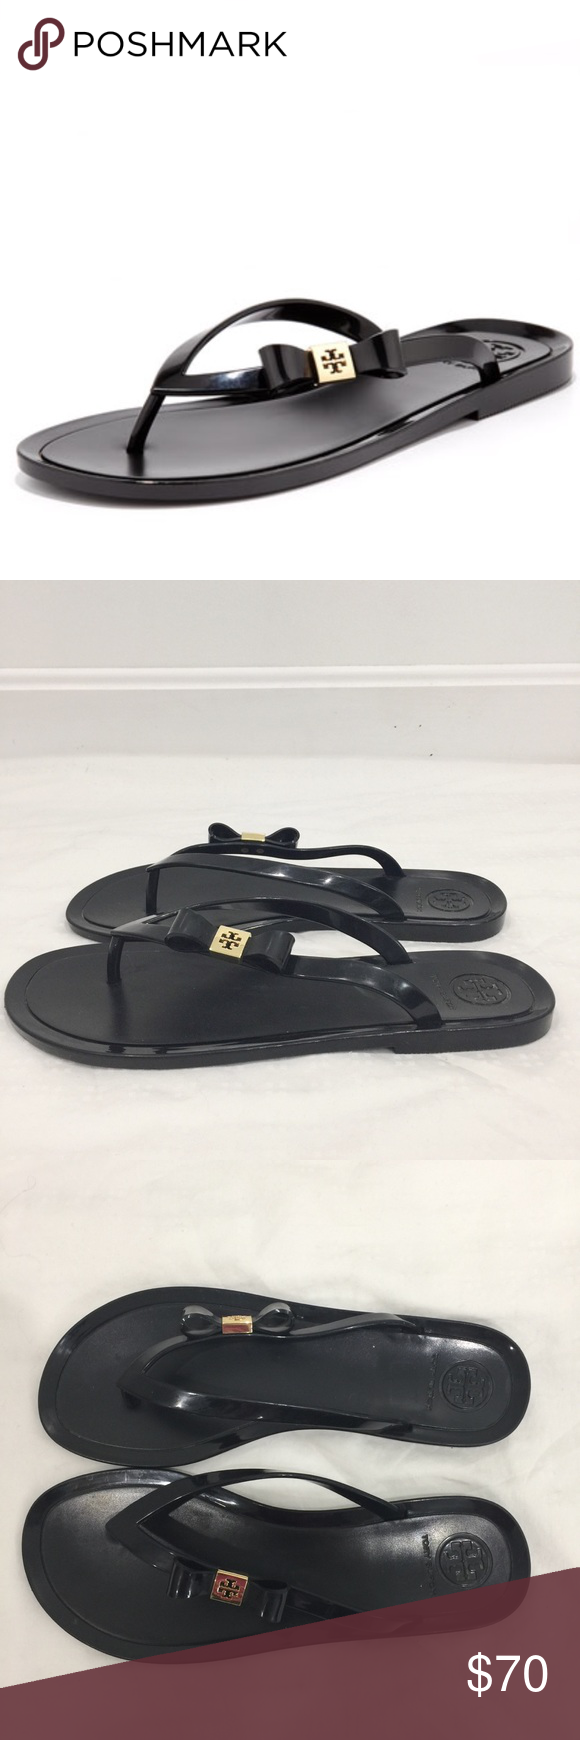 c0826b7958637b Tory Burch Black Michaela bow jelly flip flops Used good condition Some  scratches